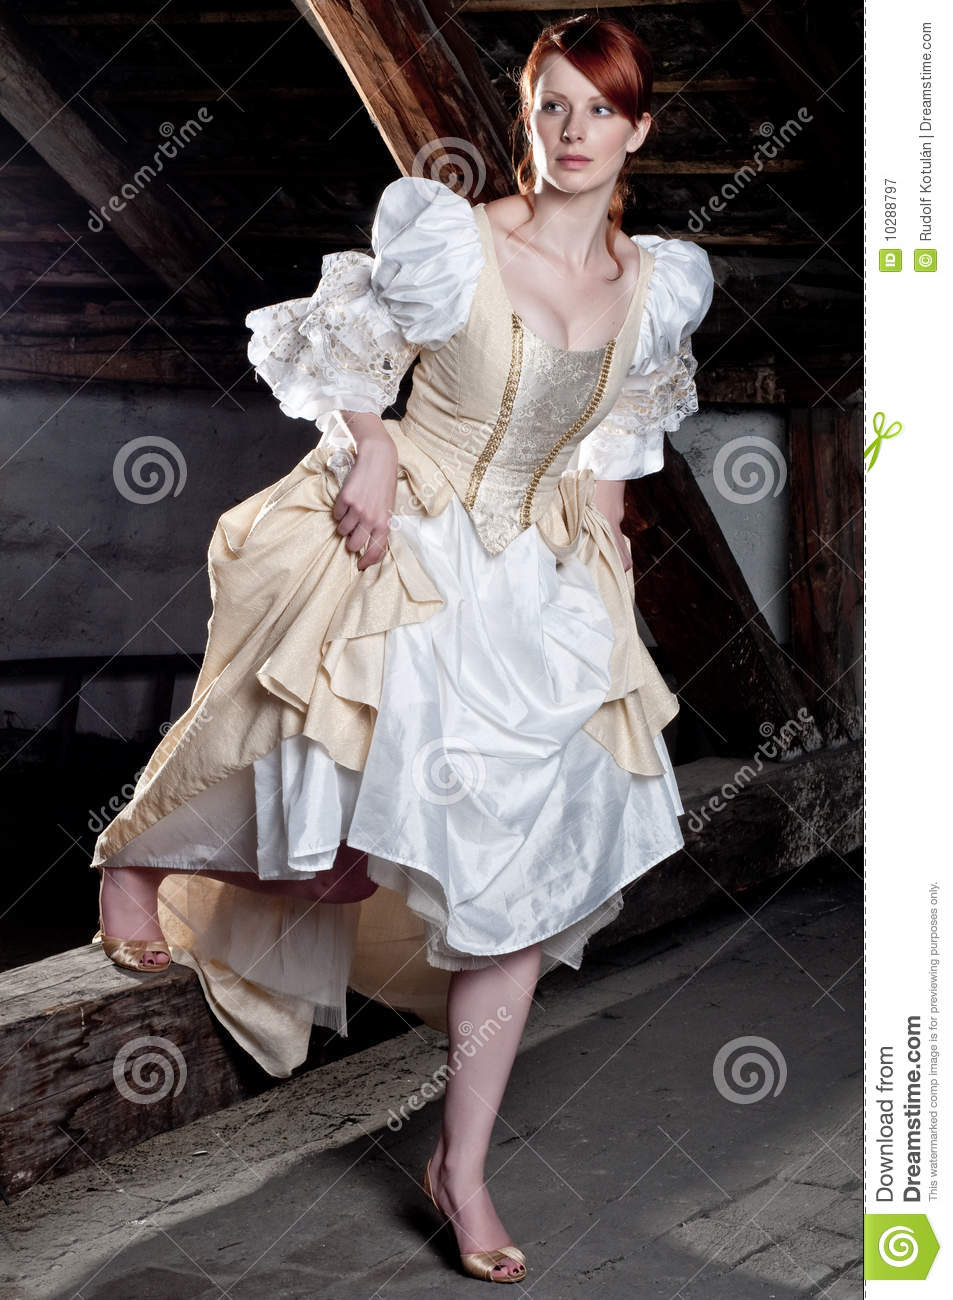 Brilliant  Several Other Women Who Were Dressed Up To The Nines For The Occasion